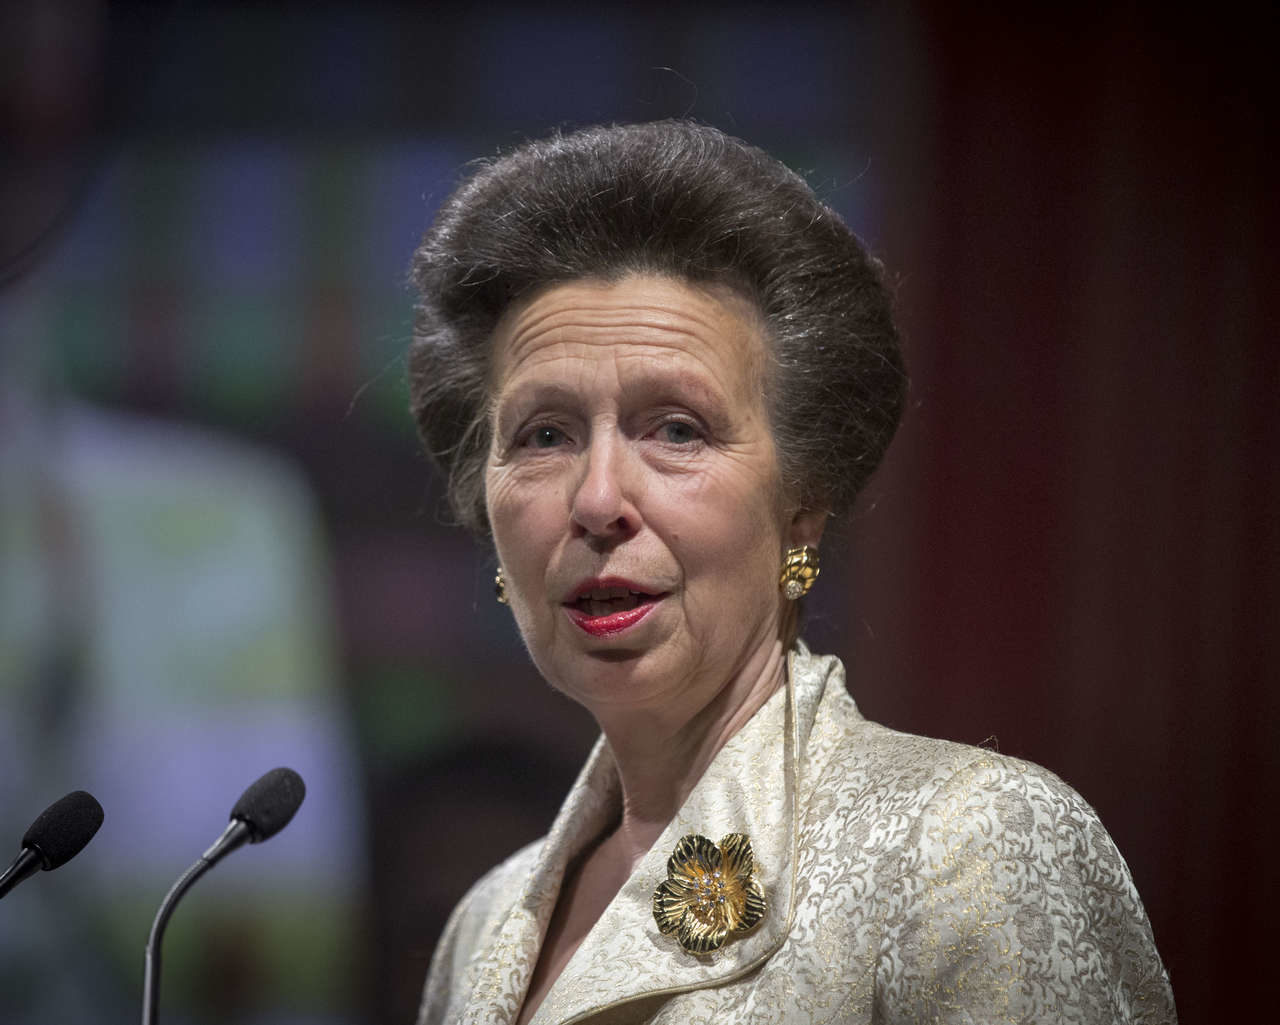 The Princess Royal attends Save the Children UK's Centenary Dinner at Roundhouse